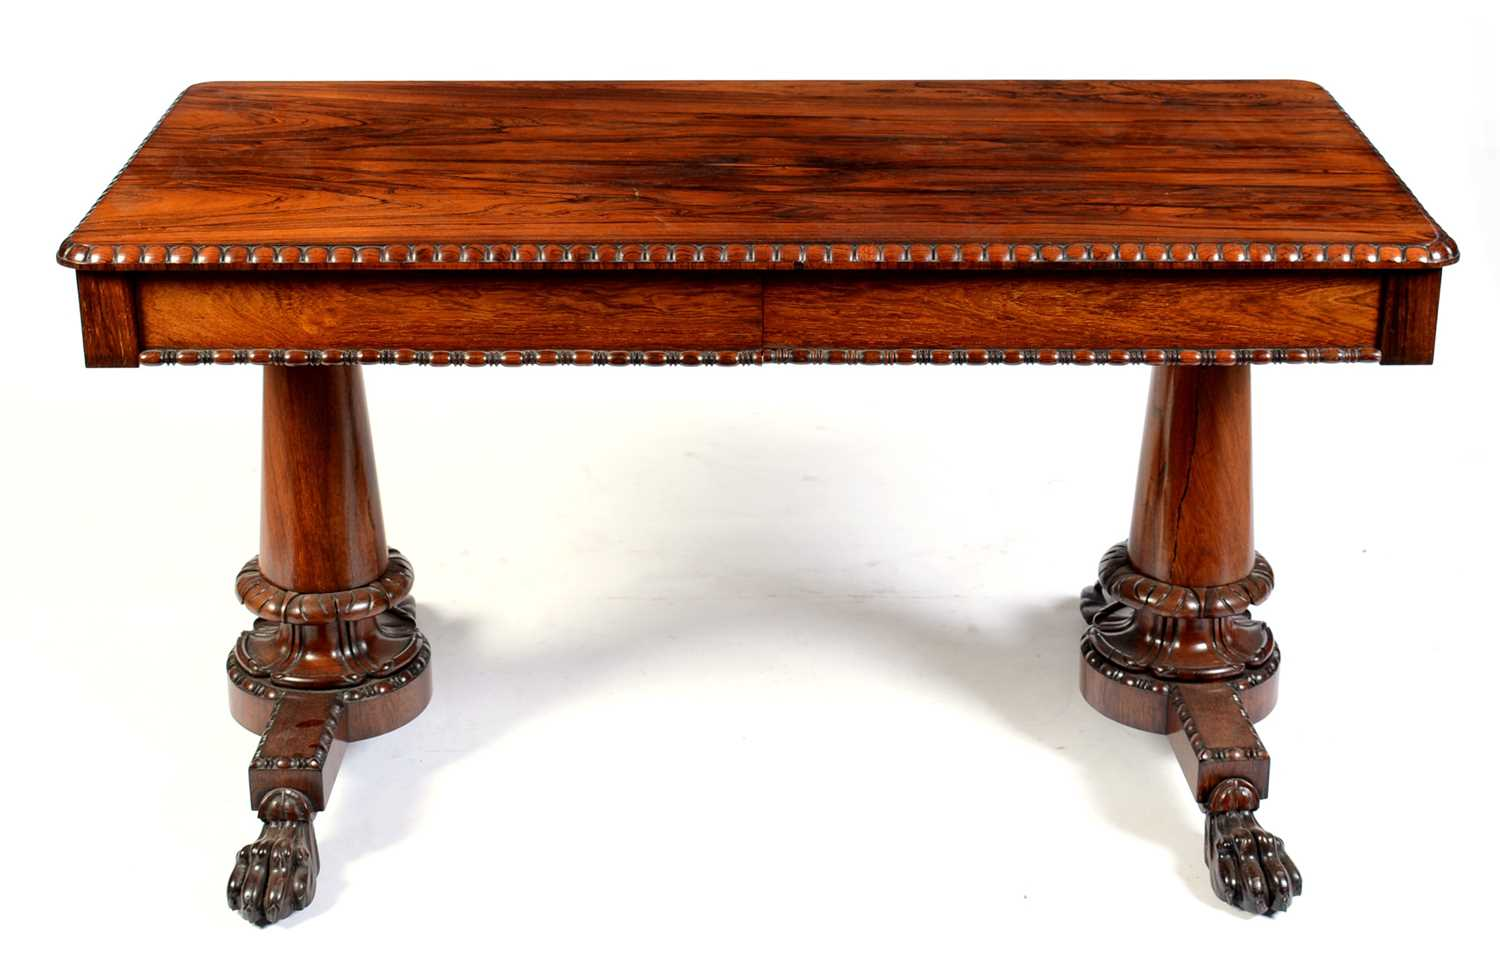 Lot 677 - William IV rosewood library table, stamped Gillows, Lancaster